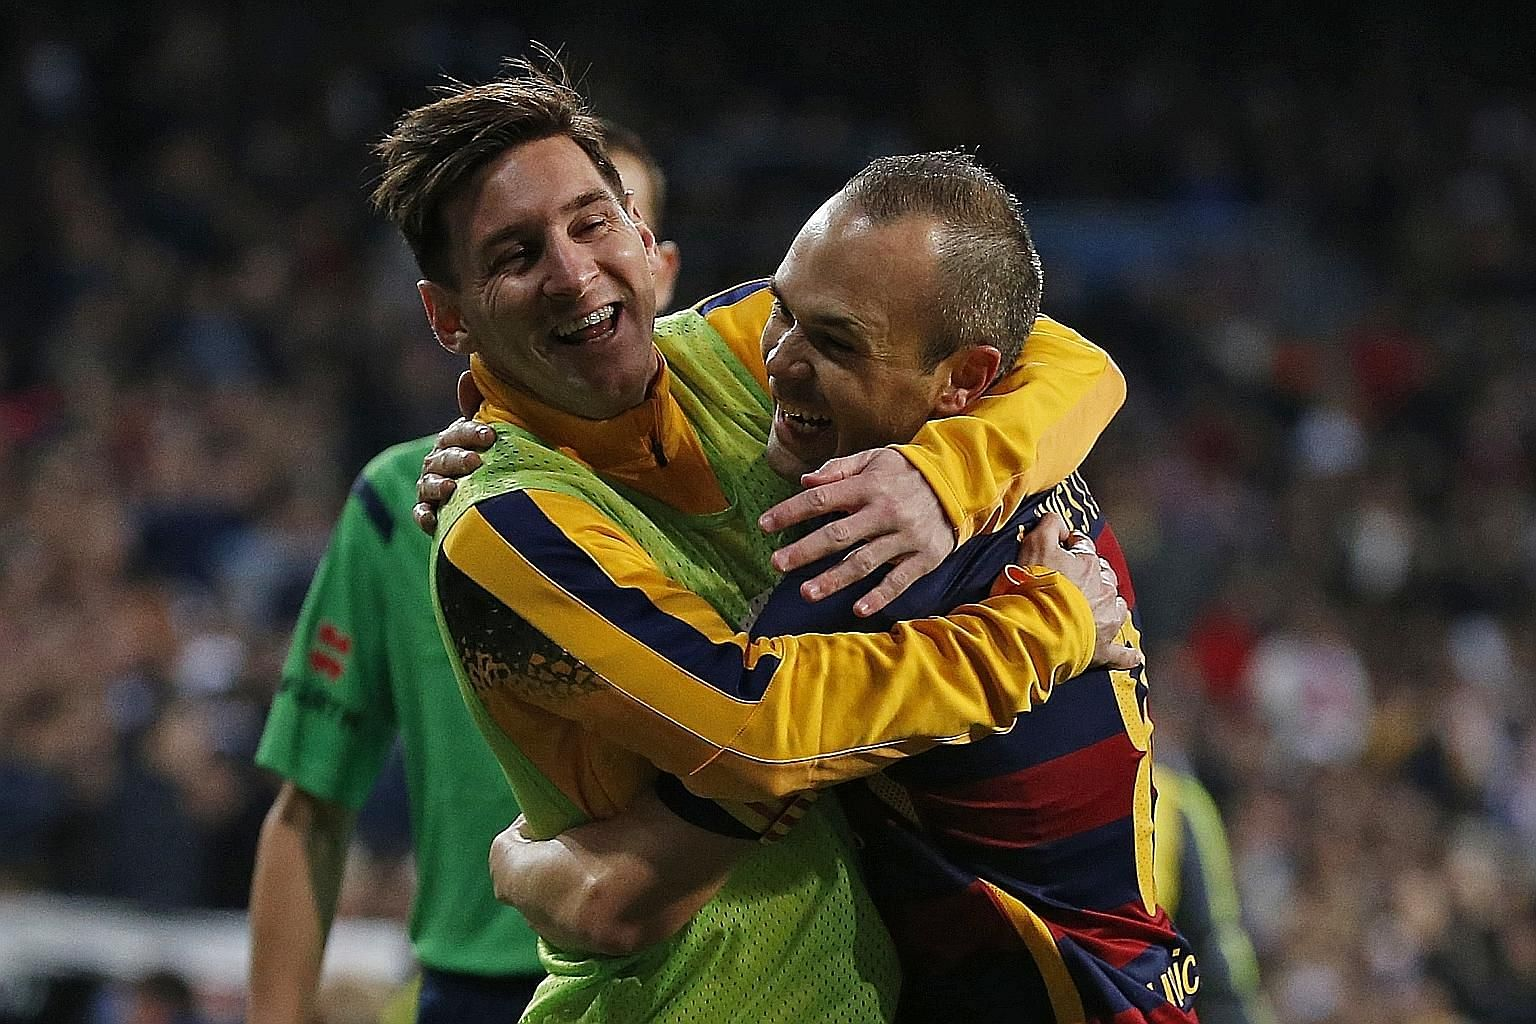 Lionel Messi (left) embracing Andres Iniesta after the latter had scored the third goal for Barcelona against Real Madrid on Saturday. Messi, who started on the bench, set up the last goal of the emphatic 4-0 victory.